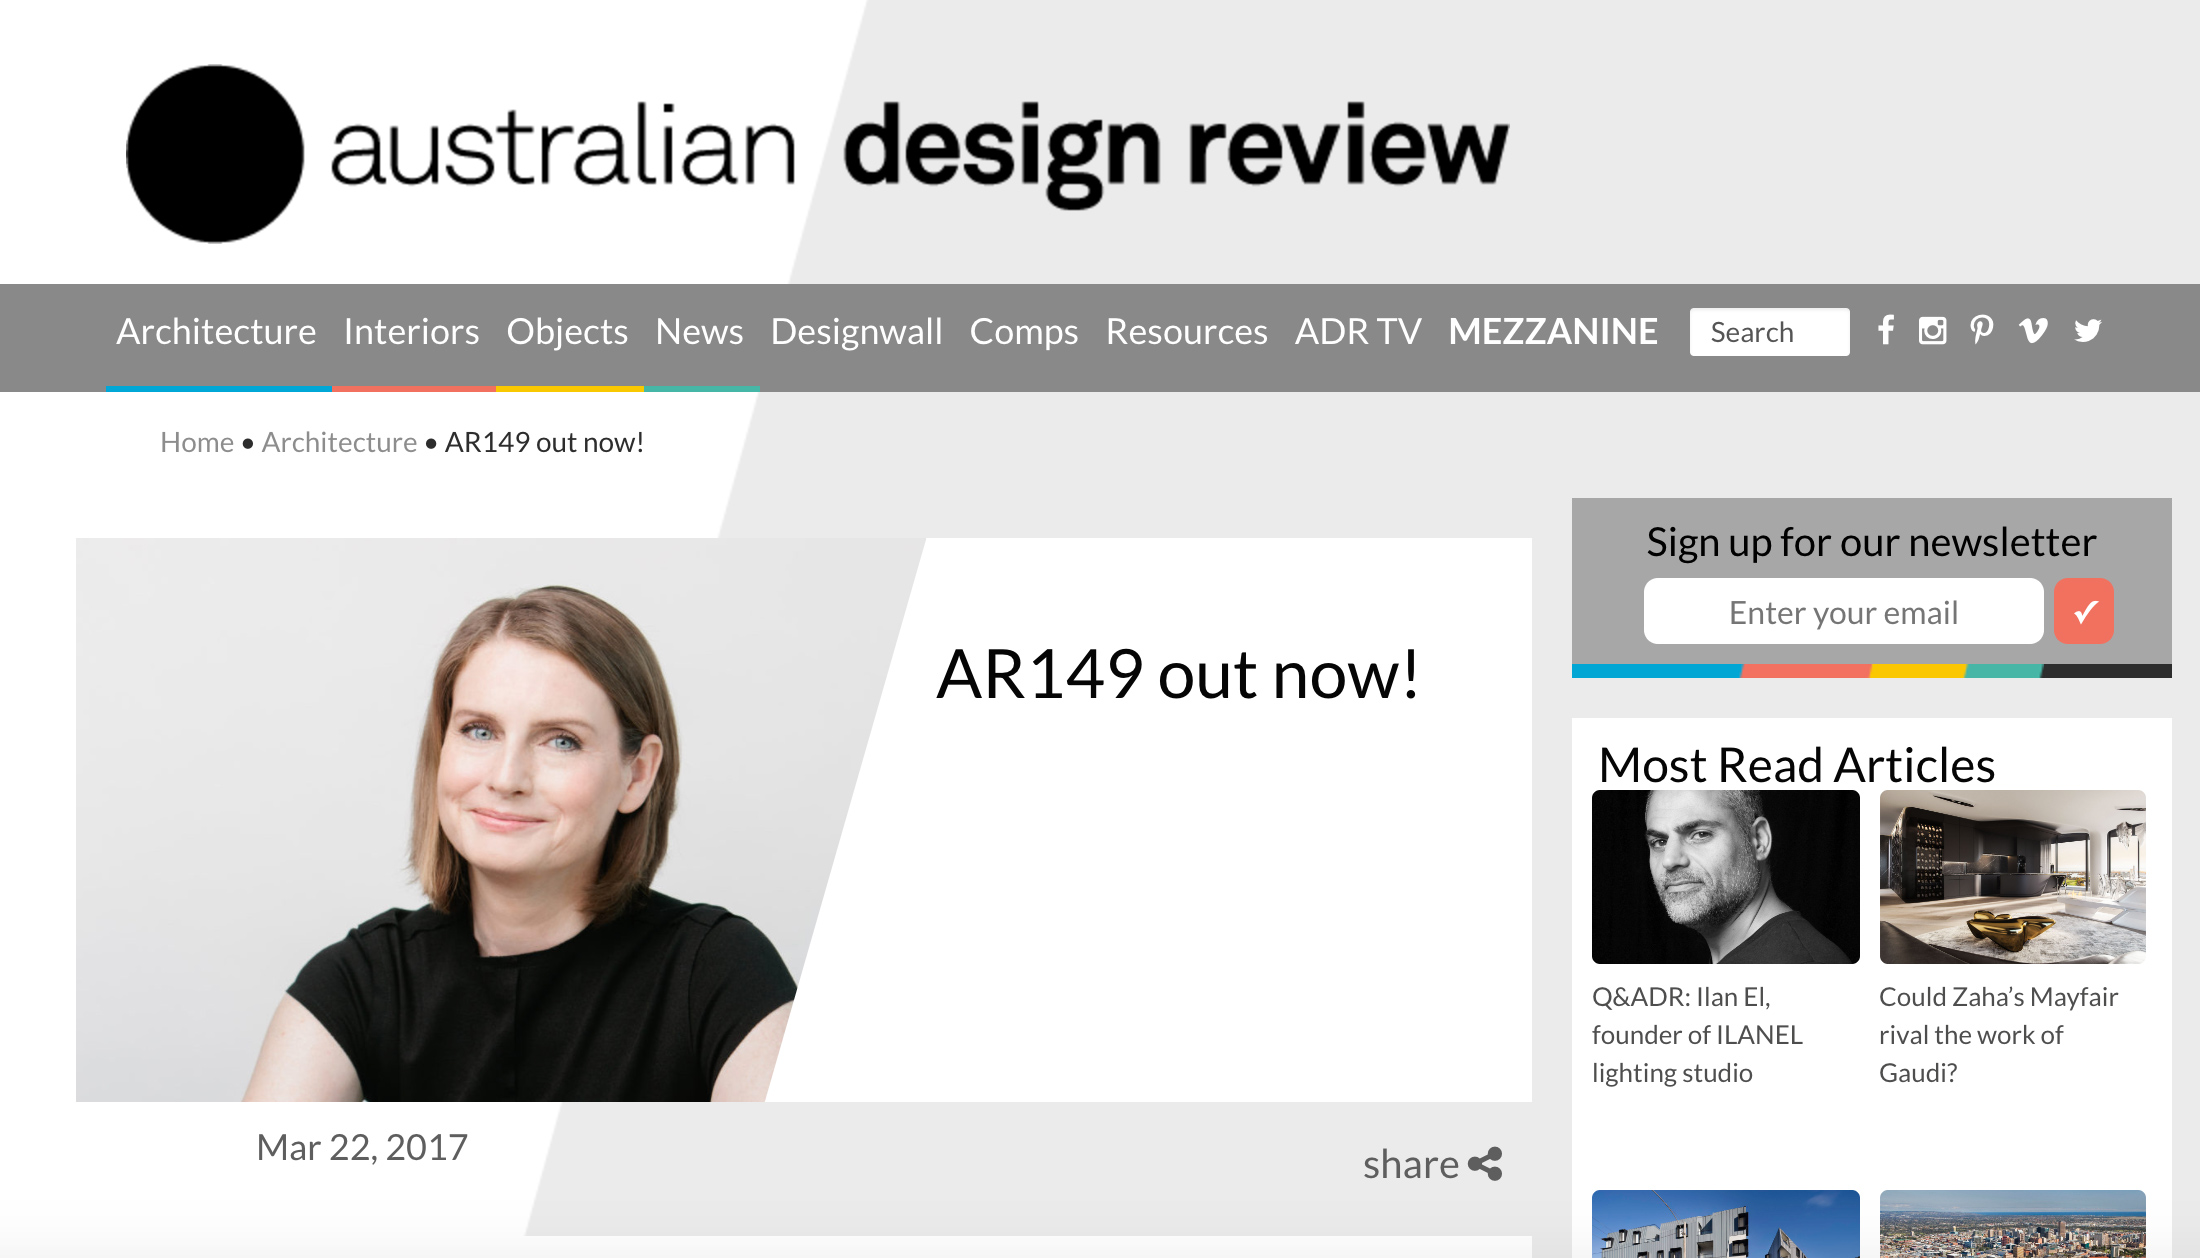 australian-design-review.jpg